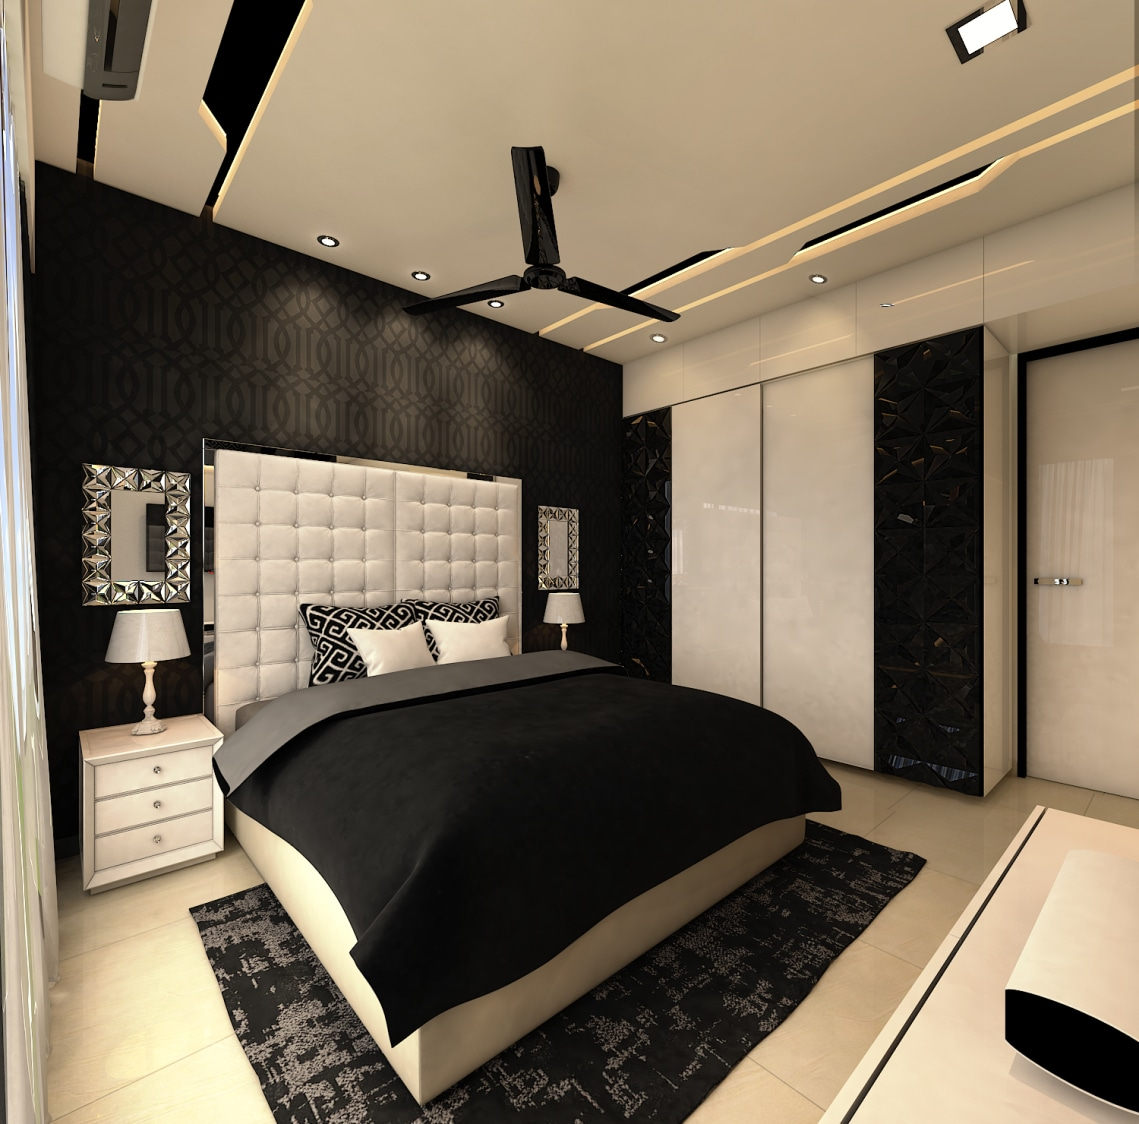 Bedroom With False Ceiling Wardrobe And Black & White